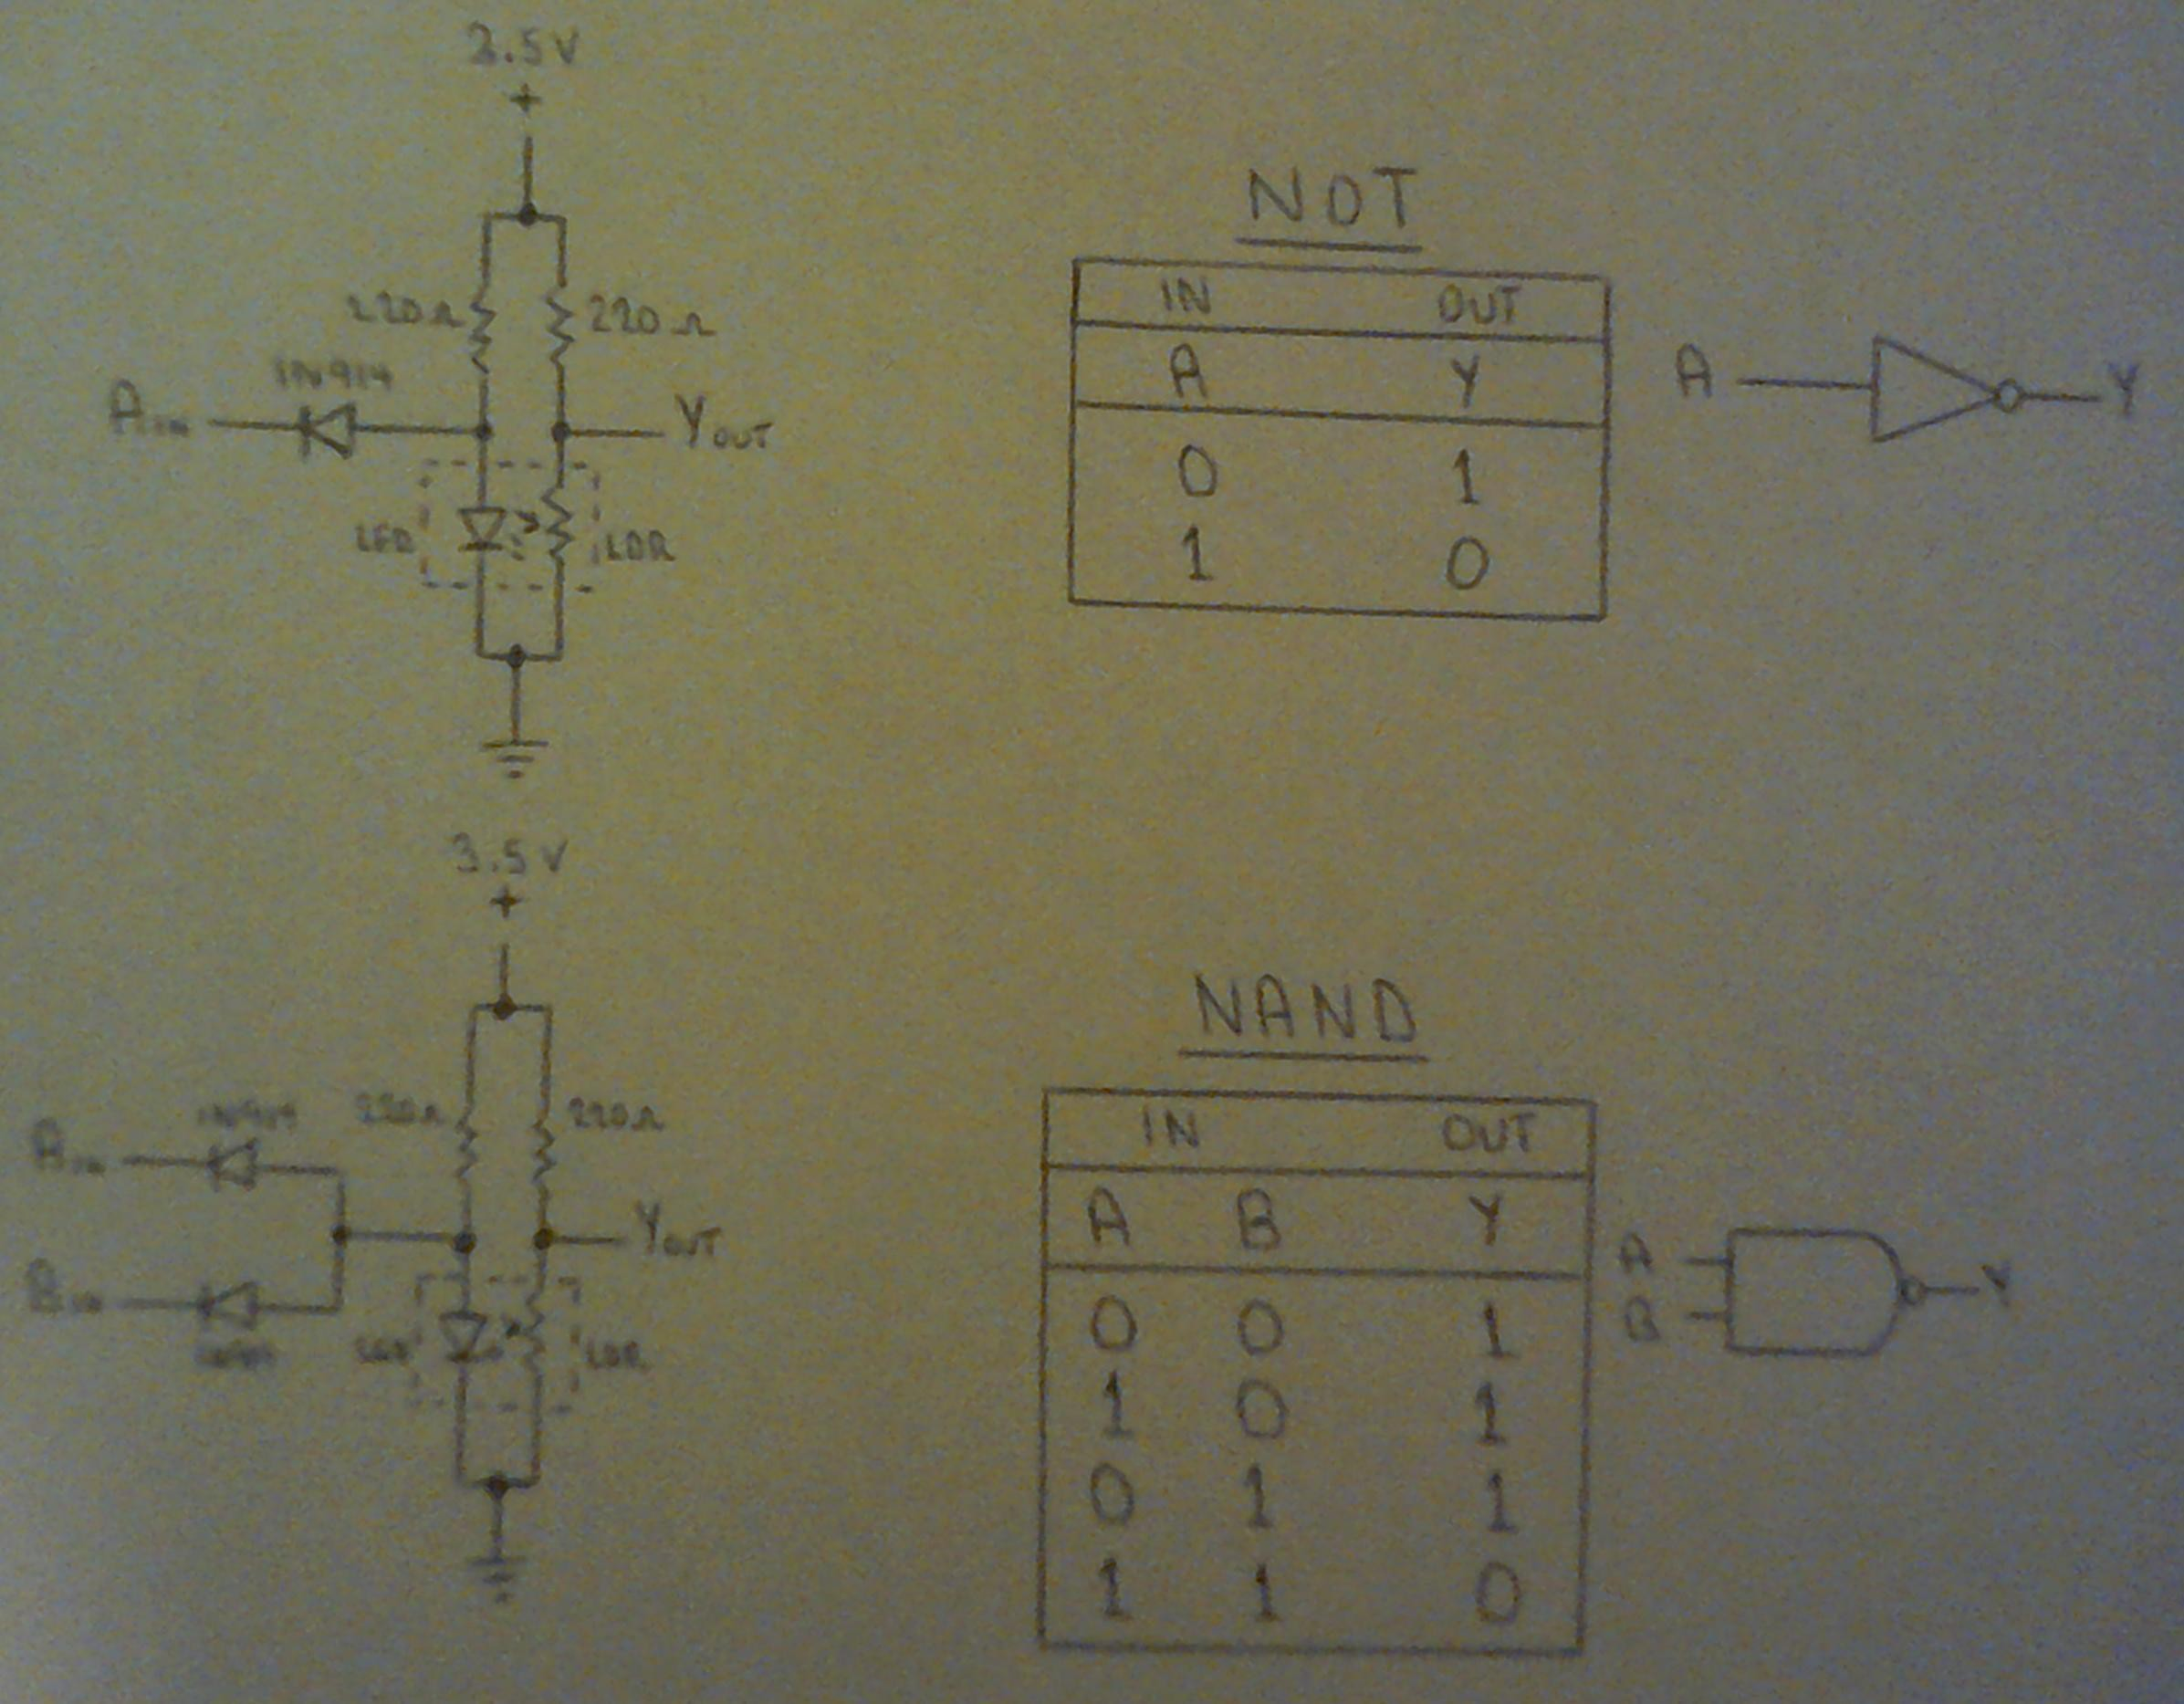 Light Logic Nand Gate Circuit Diagram On Dflip Flop Using A Led And Cds Ldr To Form Inverting Gates The Entire Boolean Set Can Be Handled Entirely By Resistors Diodes